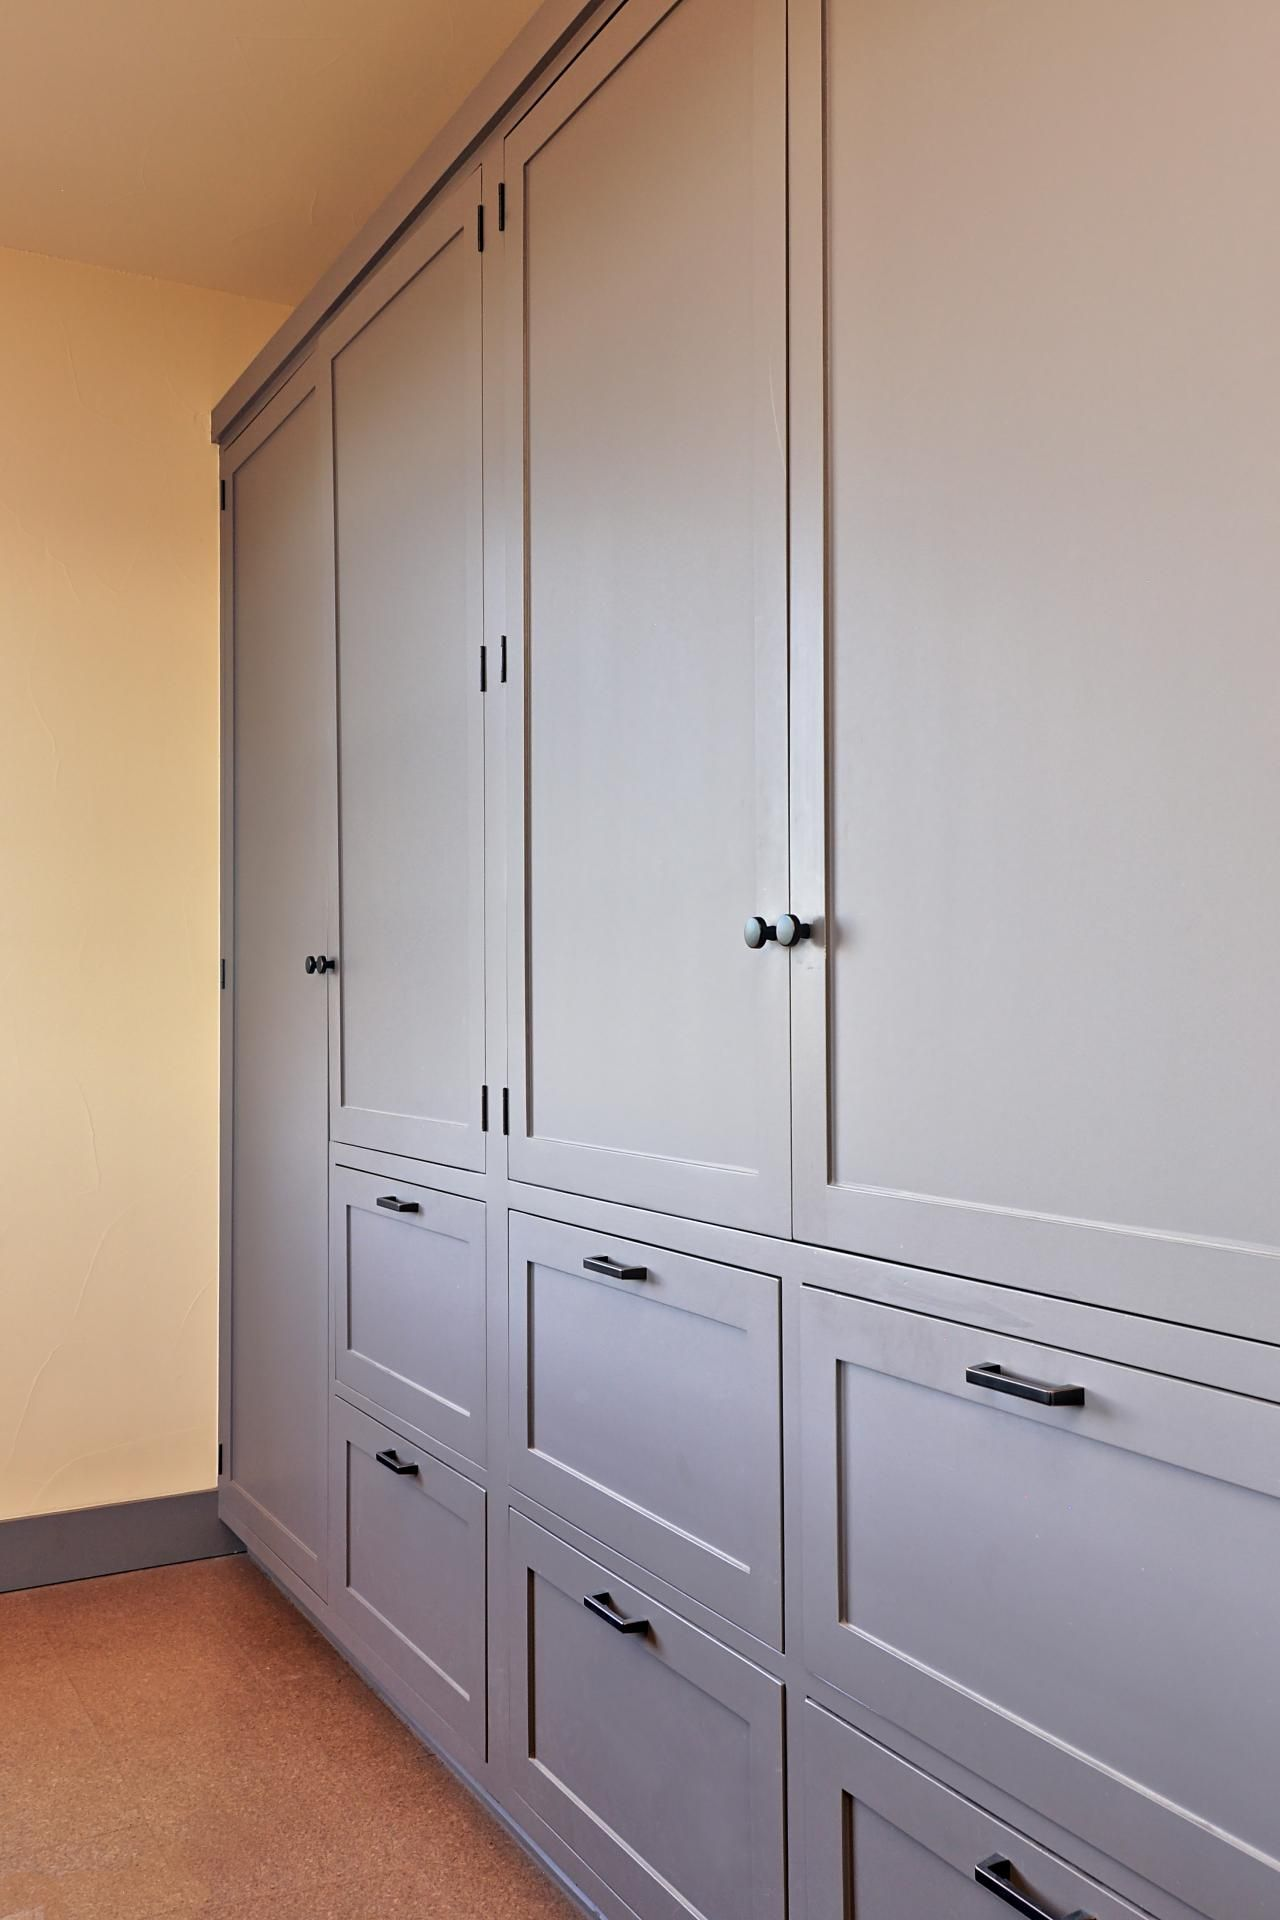 Floor To Ceiling Cabinets Build A Closet Bedroom